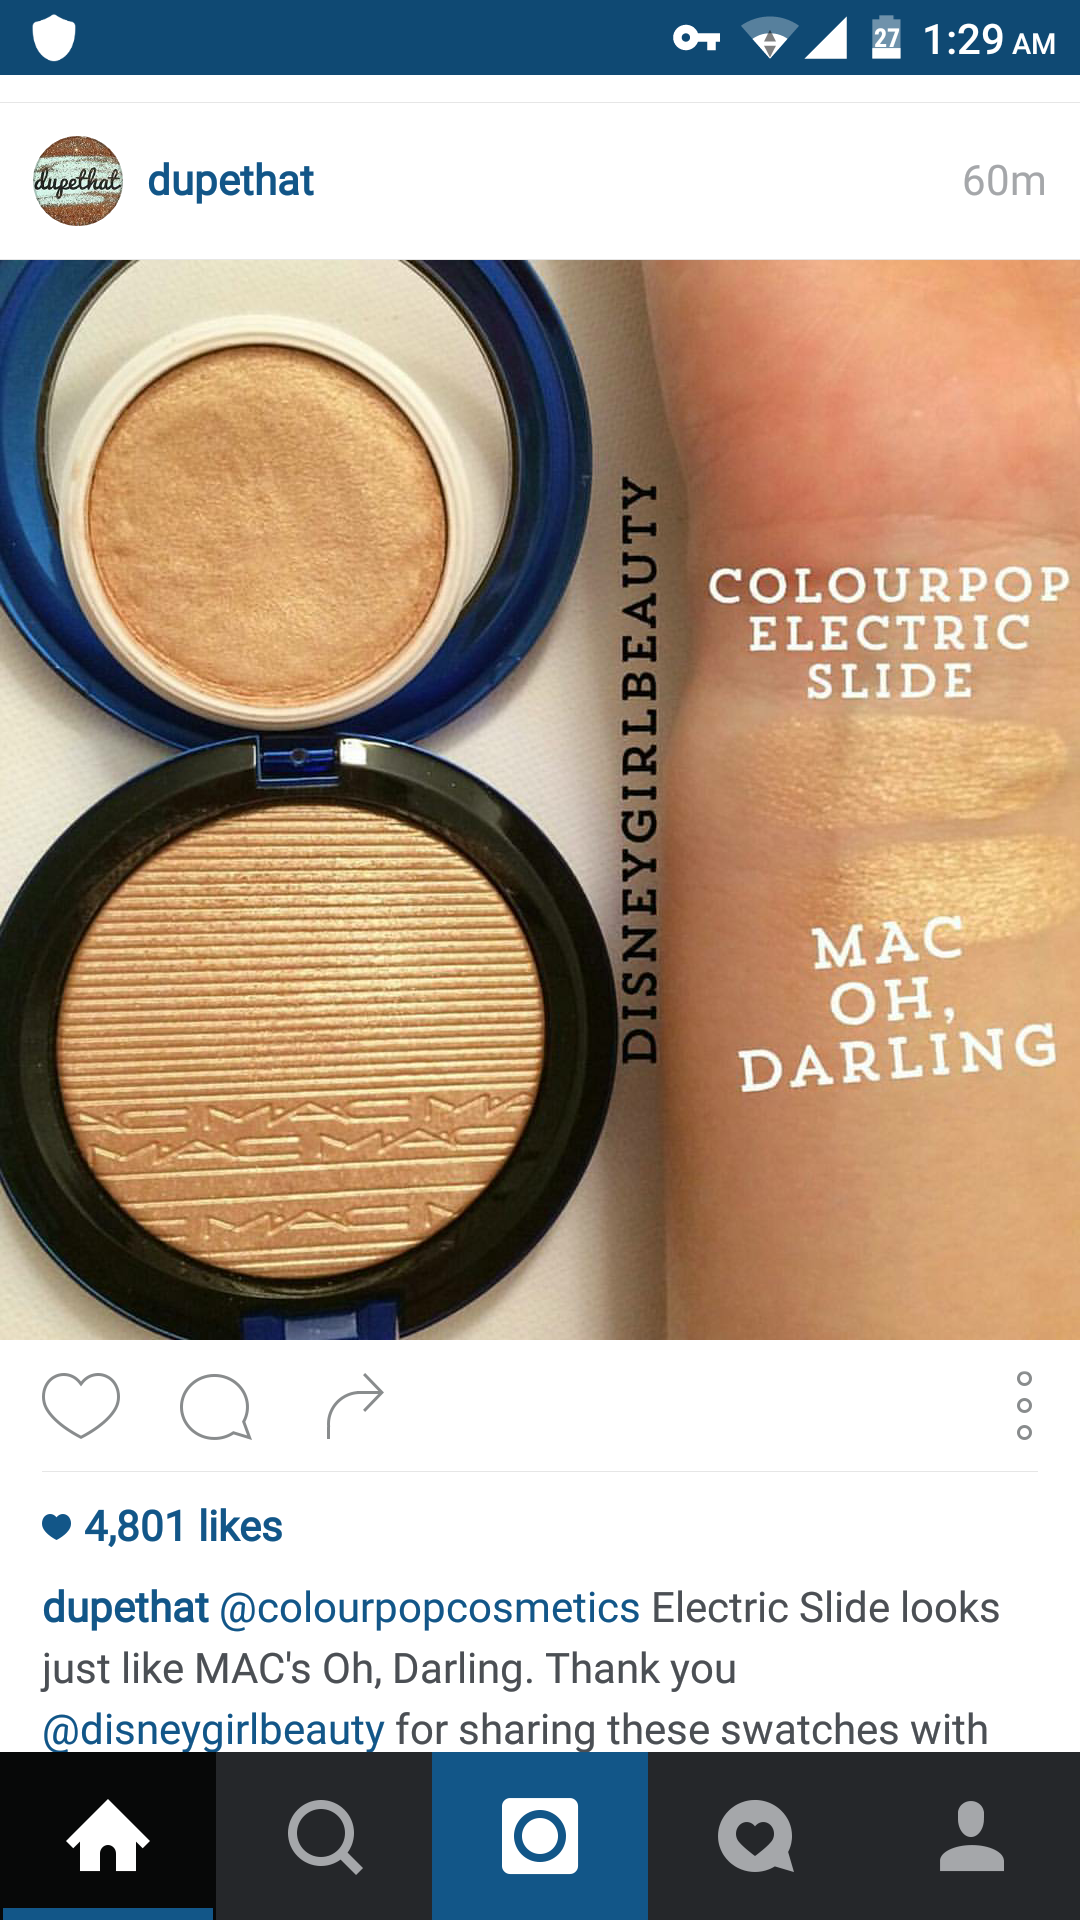 #MAC #colourpop #swatch #Highlighter Dupe